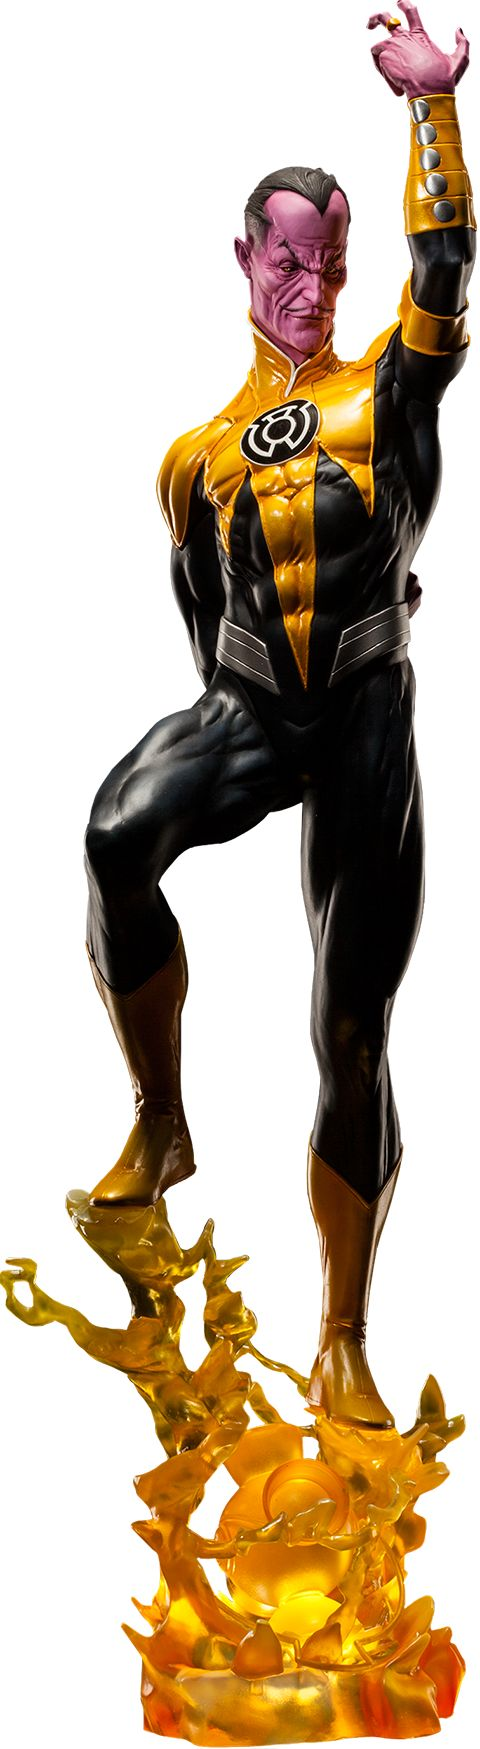 Incredible Sinestro Figure | Sinestro Premium Format™ Figure by Sideshow Collectibles